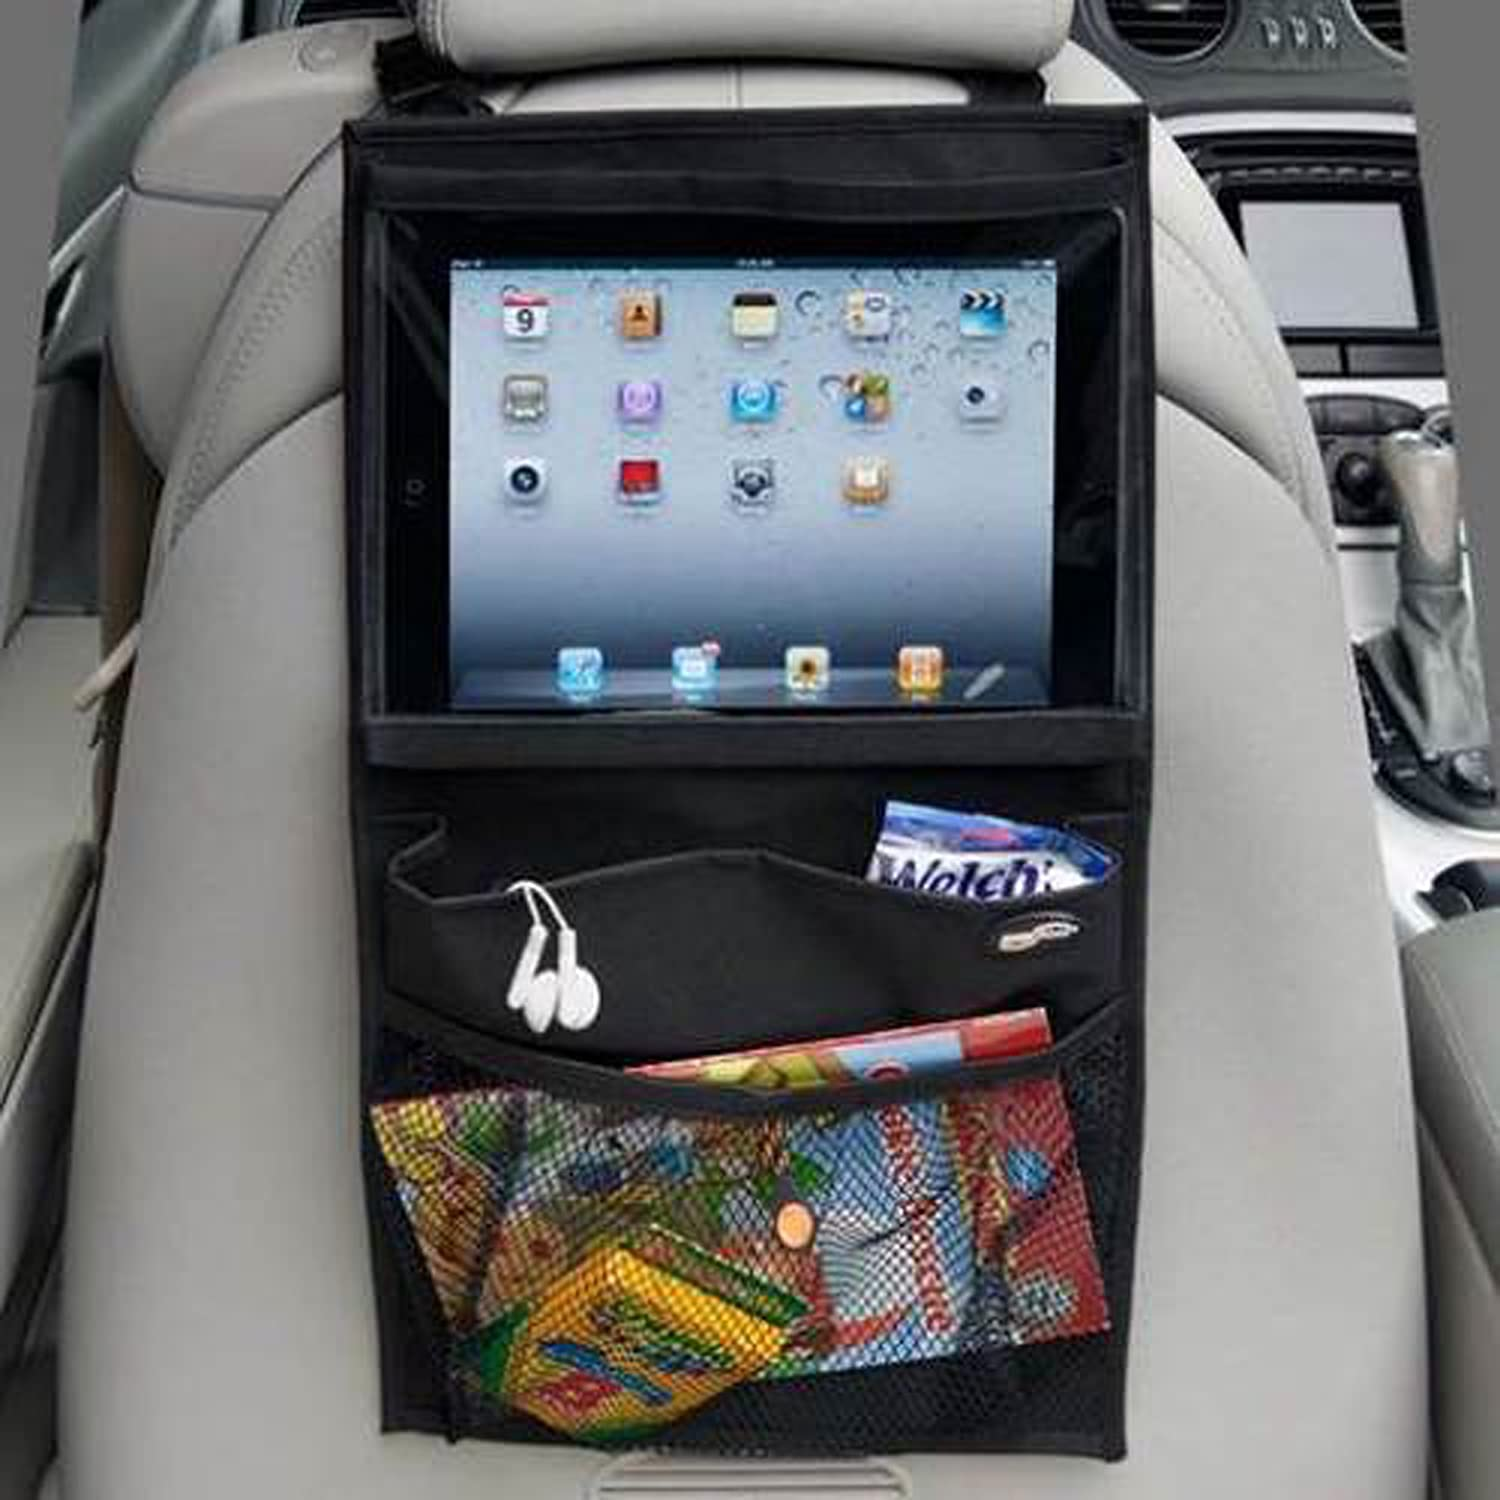 MaxAike 1 Multipurpose Universal Backseat Car Baby Stroller Organizer Ipad Seat Storage Fit for Car Truck and SUV